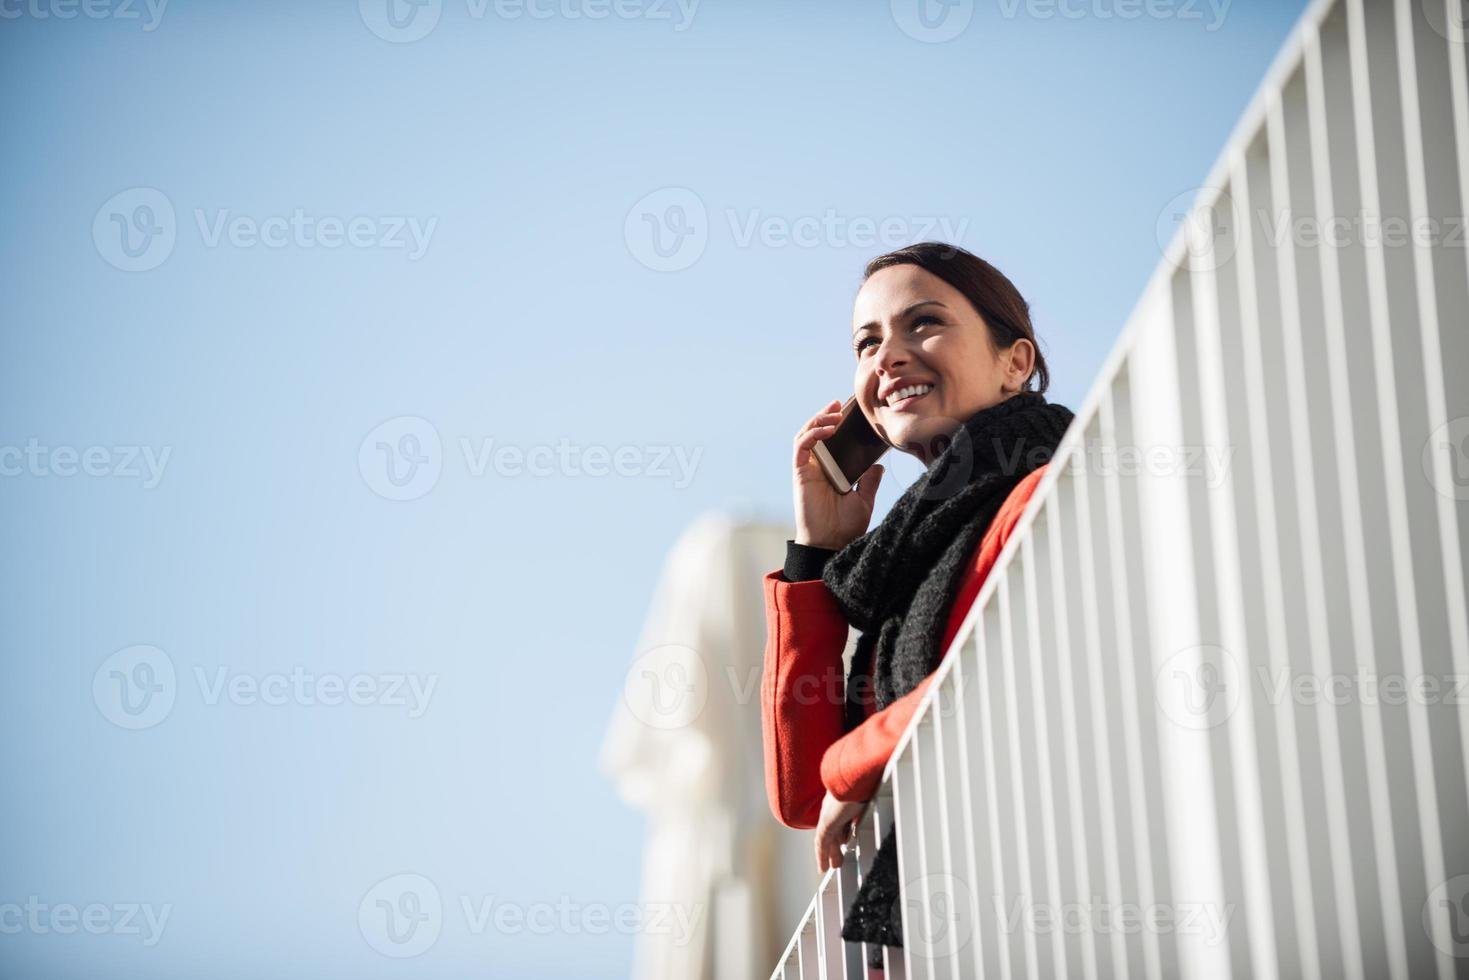 Smiling woman on a terrace photo